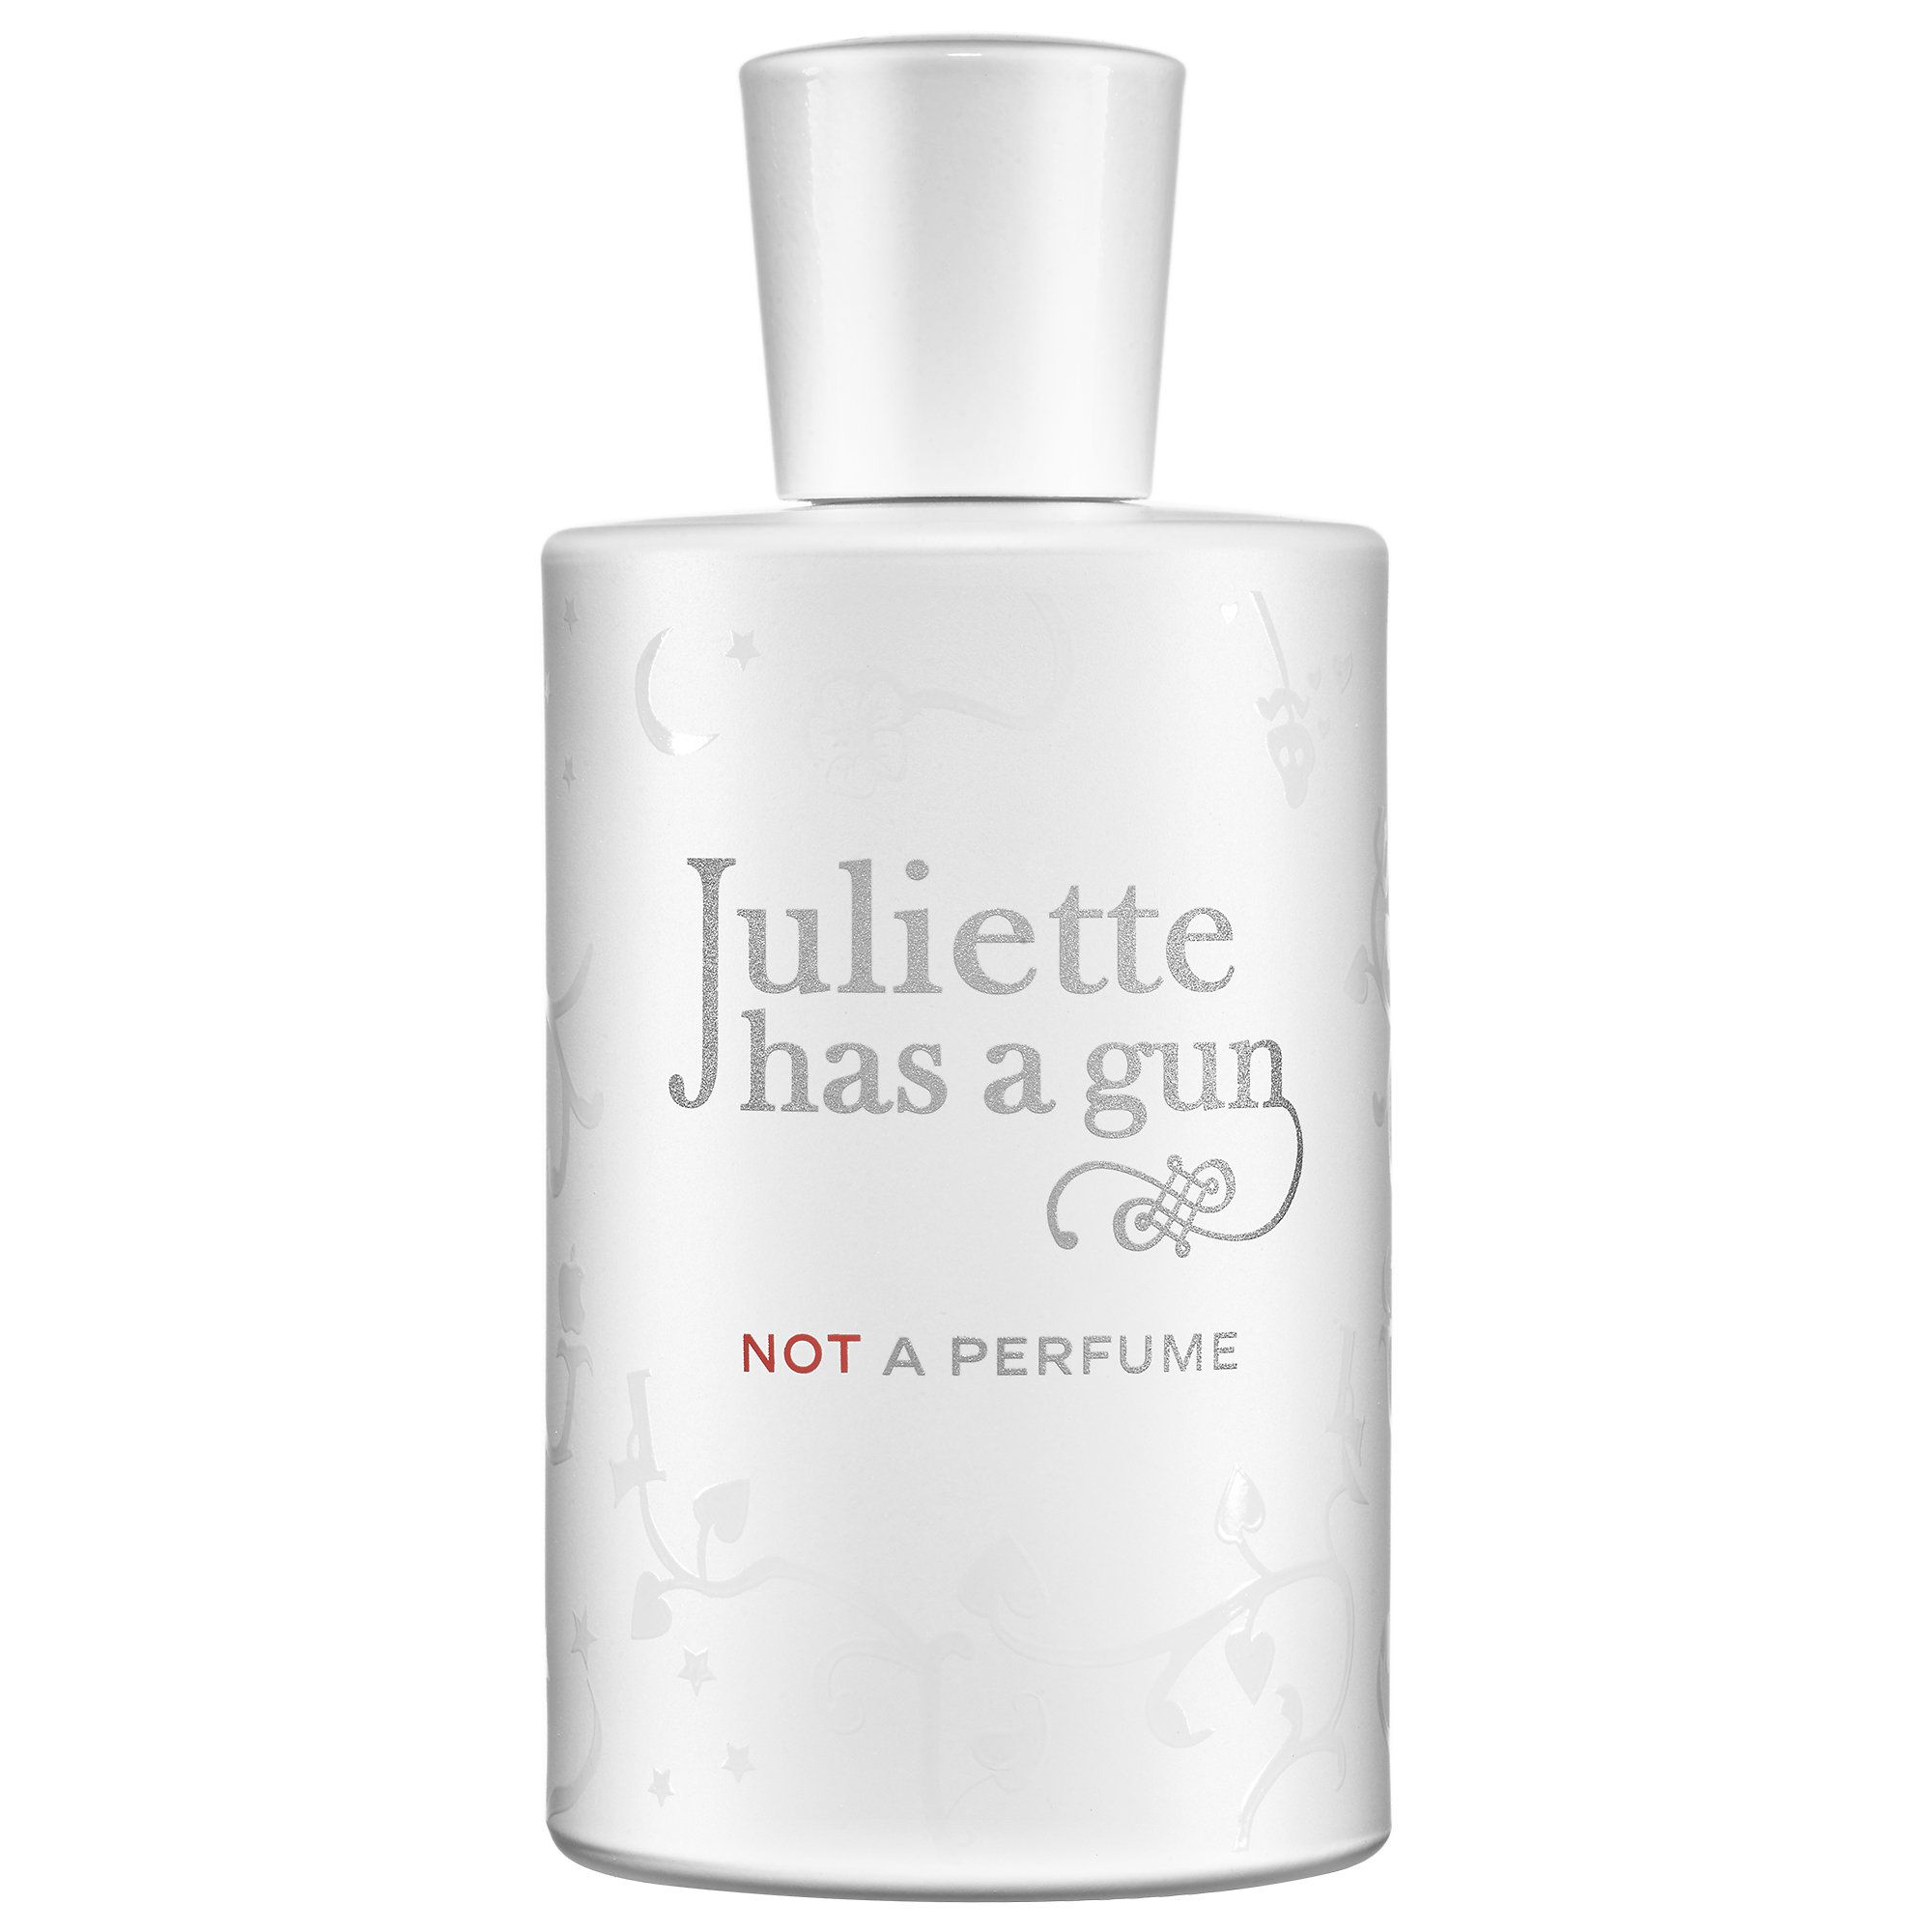 Shop Has SephoraThis By Gun Not At Perfume A Juliette Fragrance 7g6yfvYb